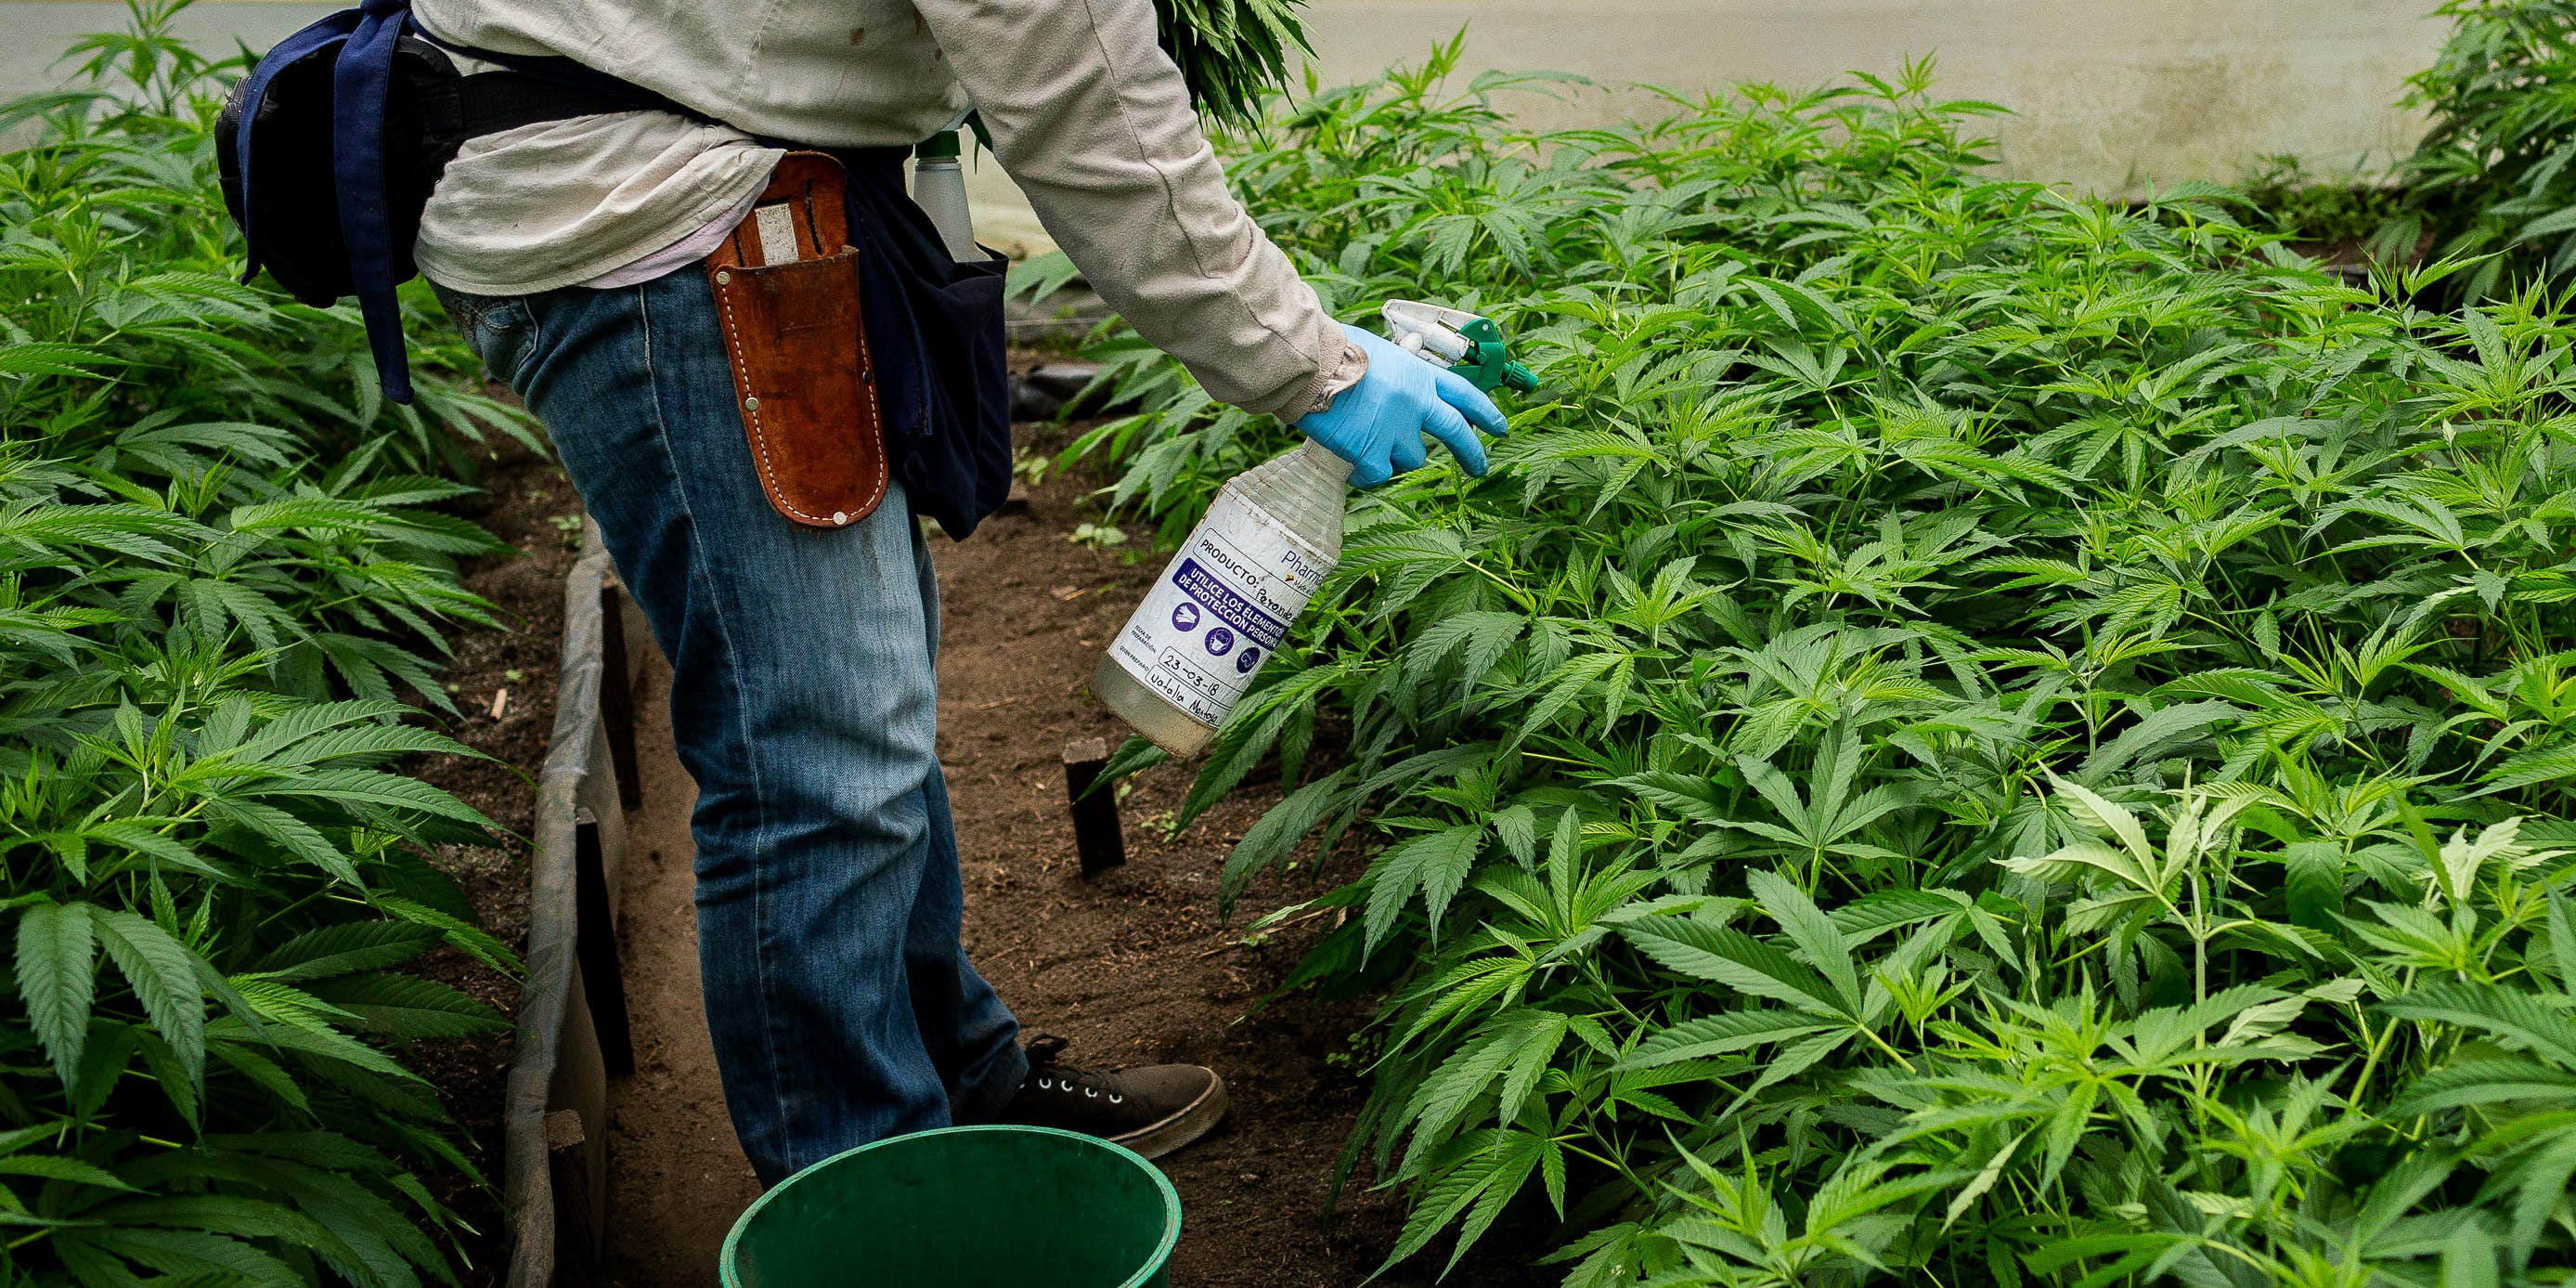 An employee sprays marijuana plants at the PharmaCielo Ltd. facility in Rionegro, Colombia, on Thursday, April 26, 2018. Natural pesticide use on cannabis is growing in popularity.